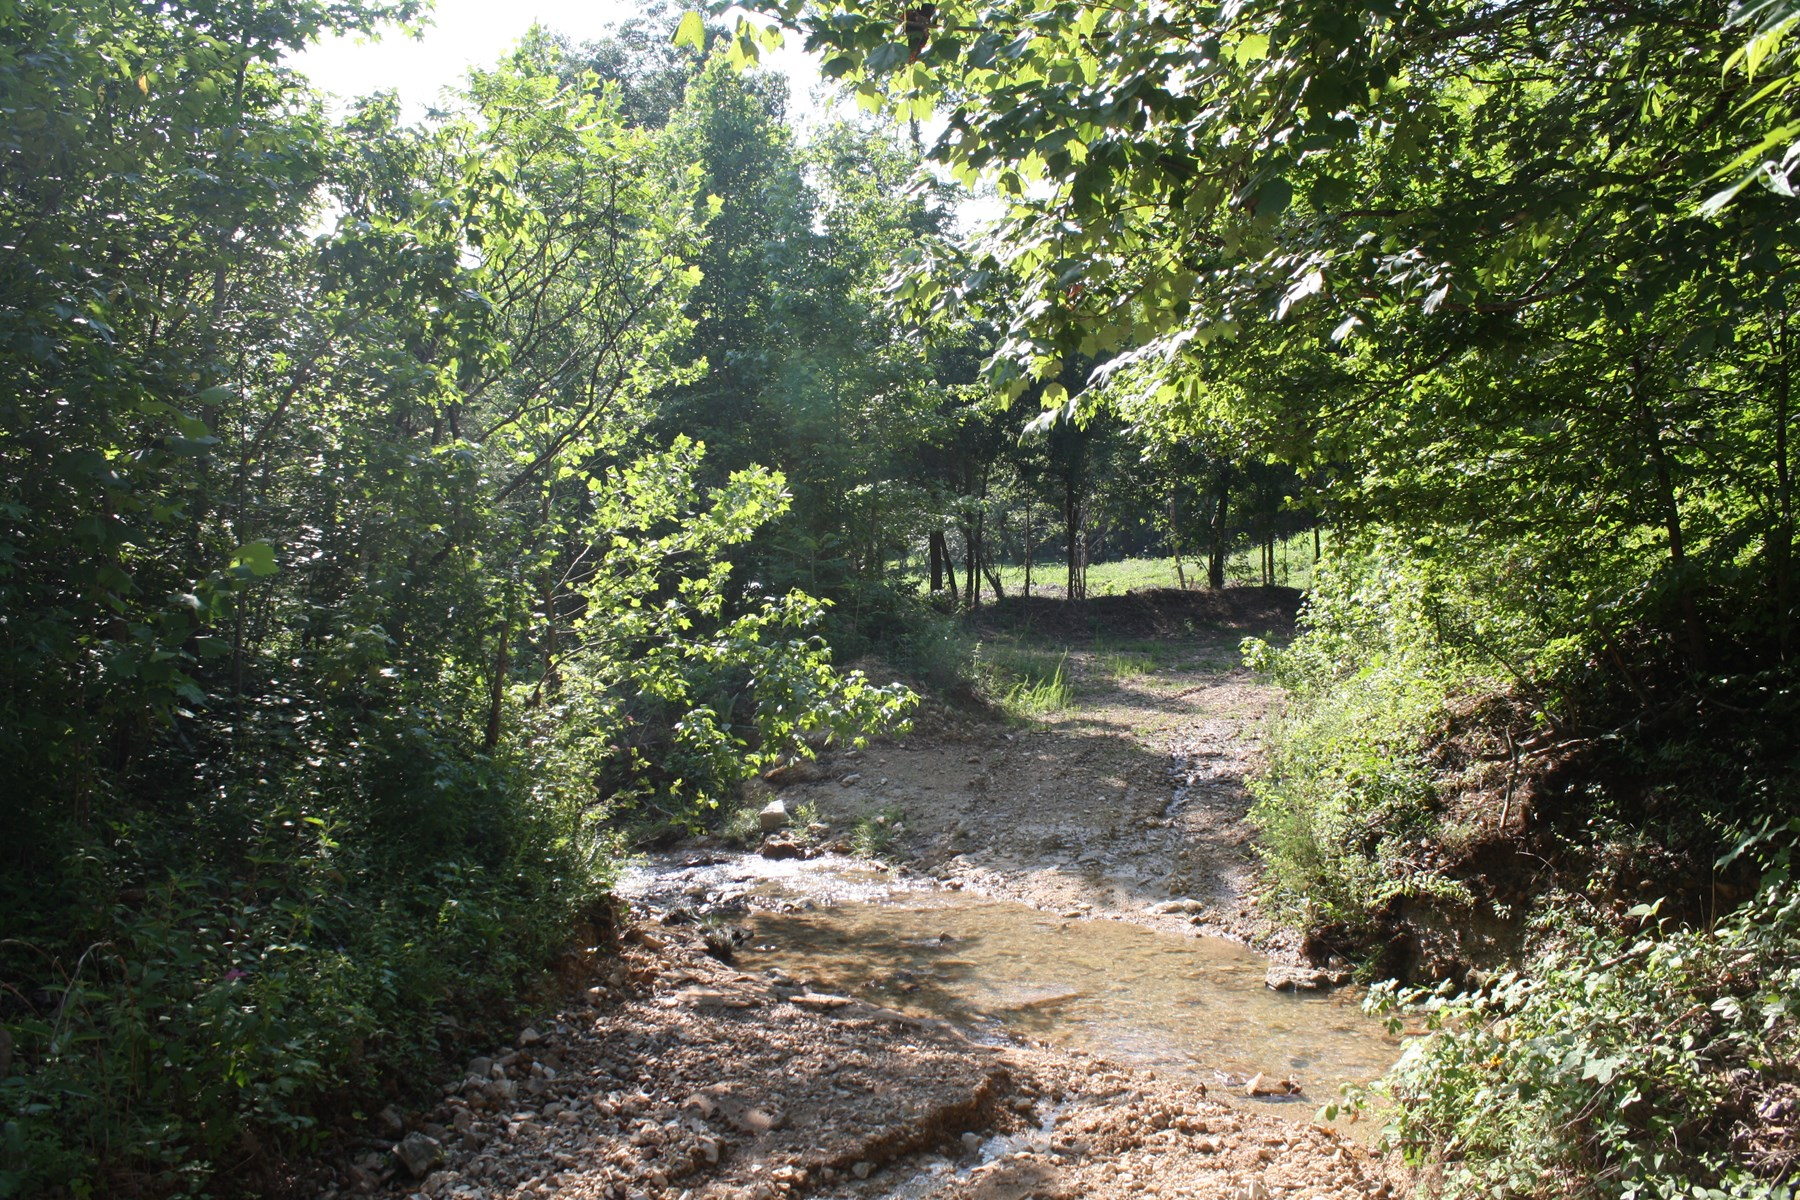 49.06 Acres w/ Creek Great for Hunting or Building, $98,000